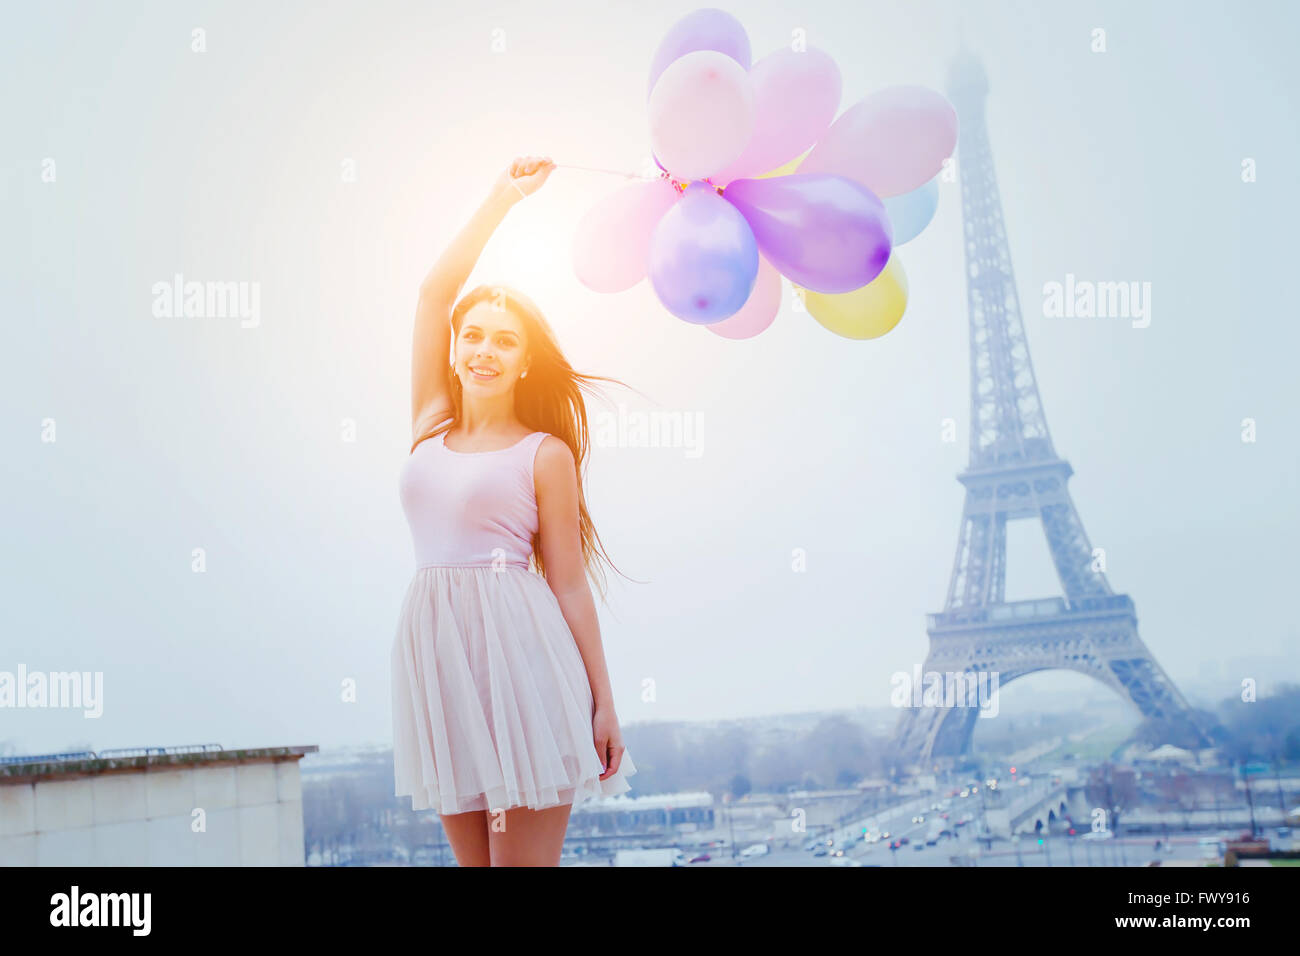 vacations in Paris, colorful dreams, happy girl with balloons near Eiffel tower - Stock Image